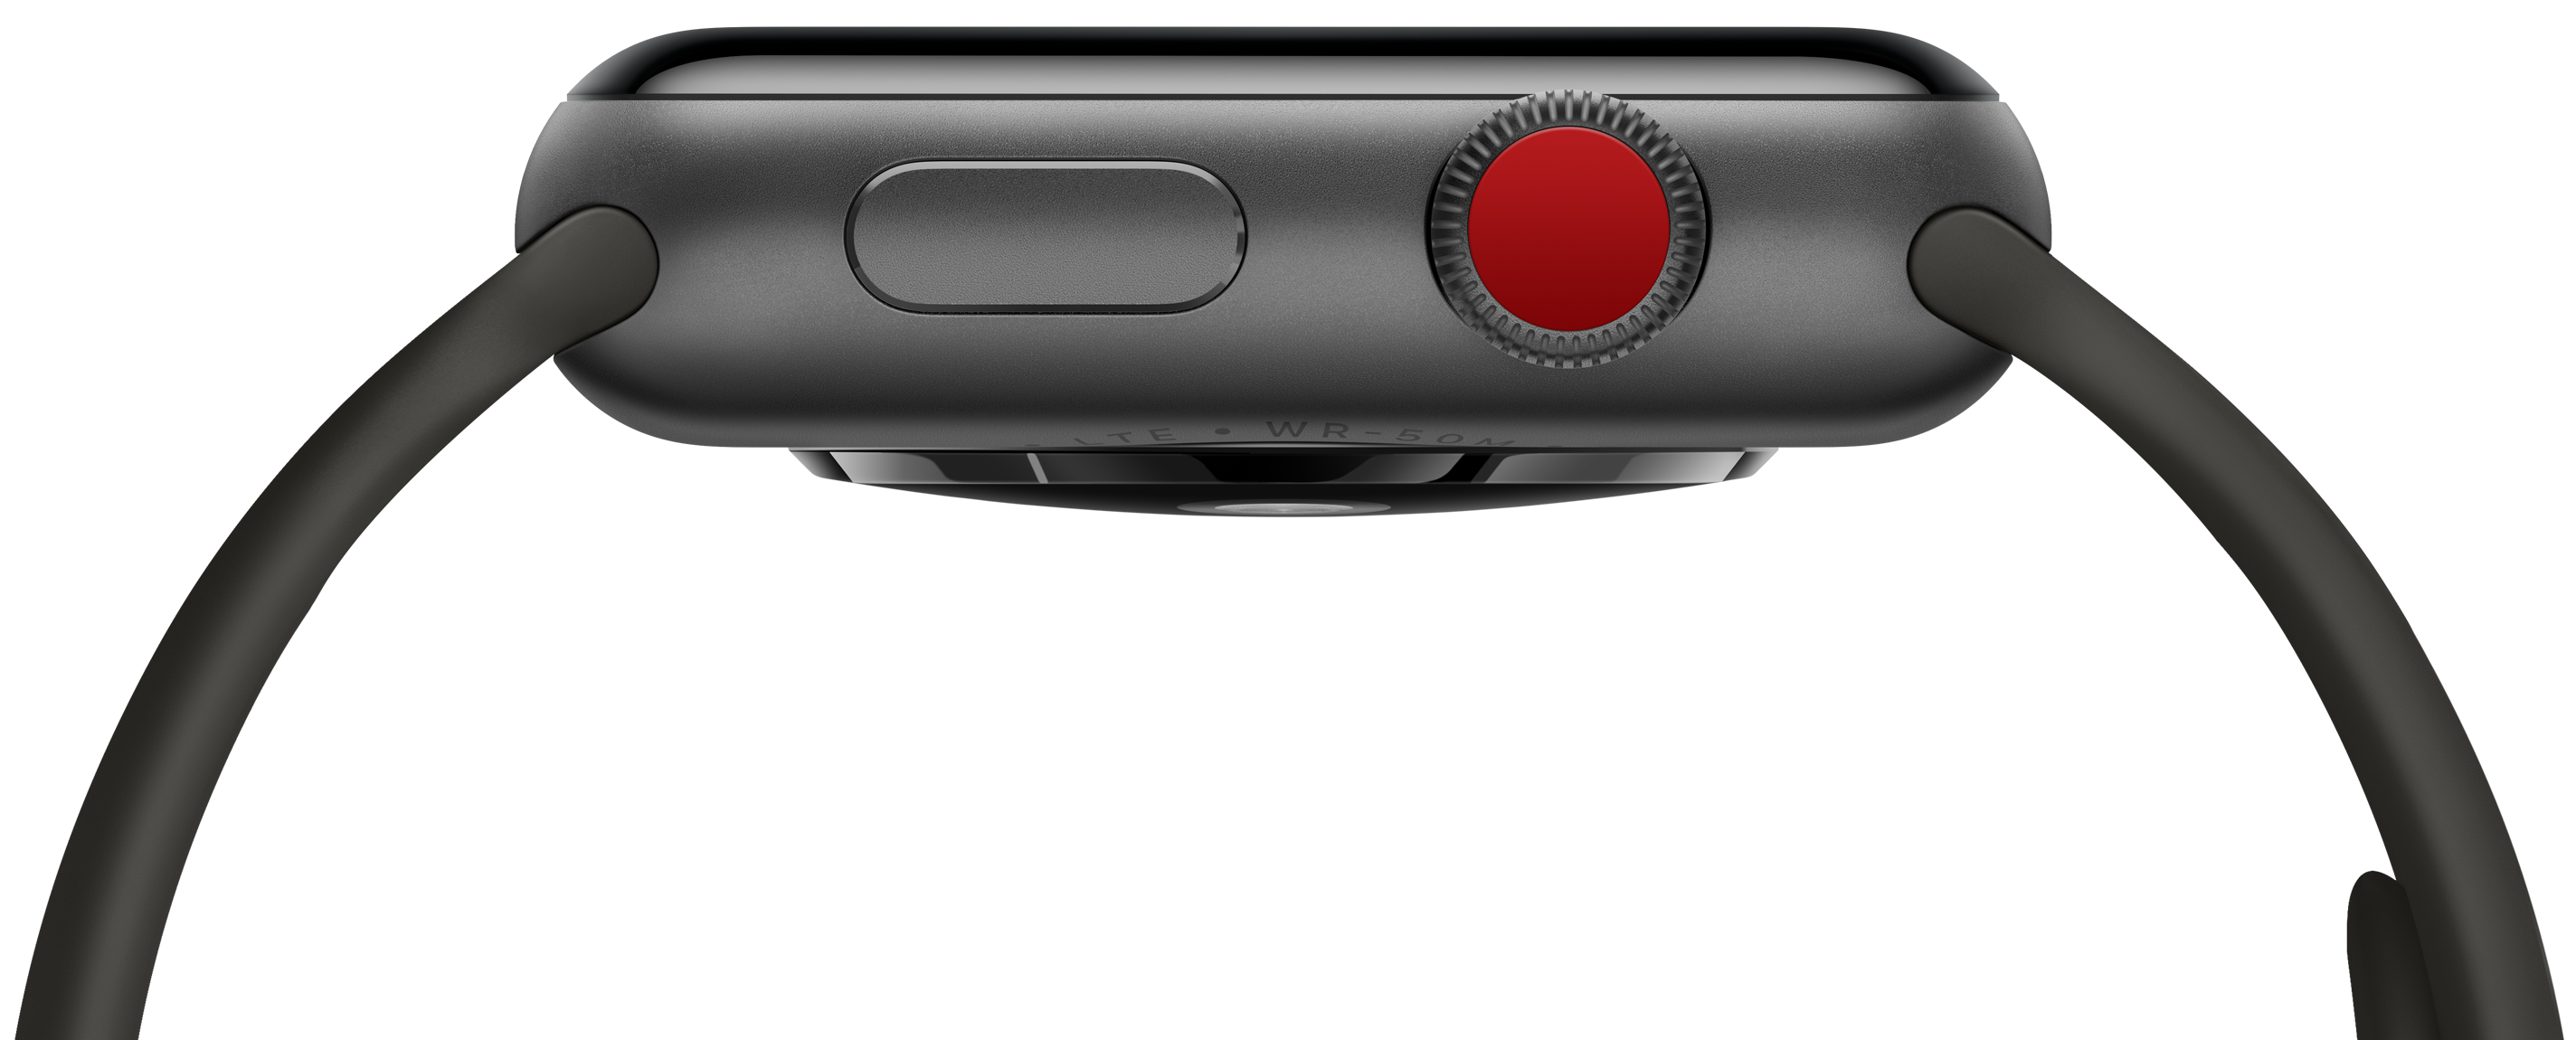 Apple Watch Series 3 (GPS + Cellular) com a Digital Crown vermelha destacada